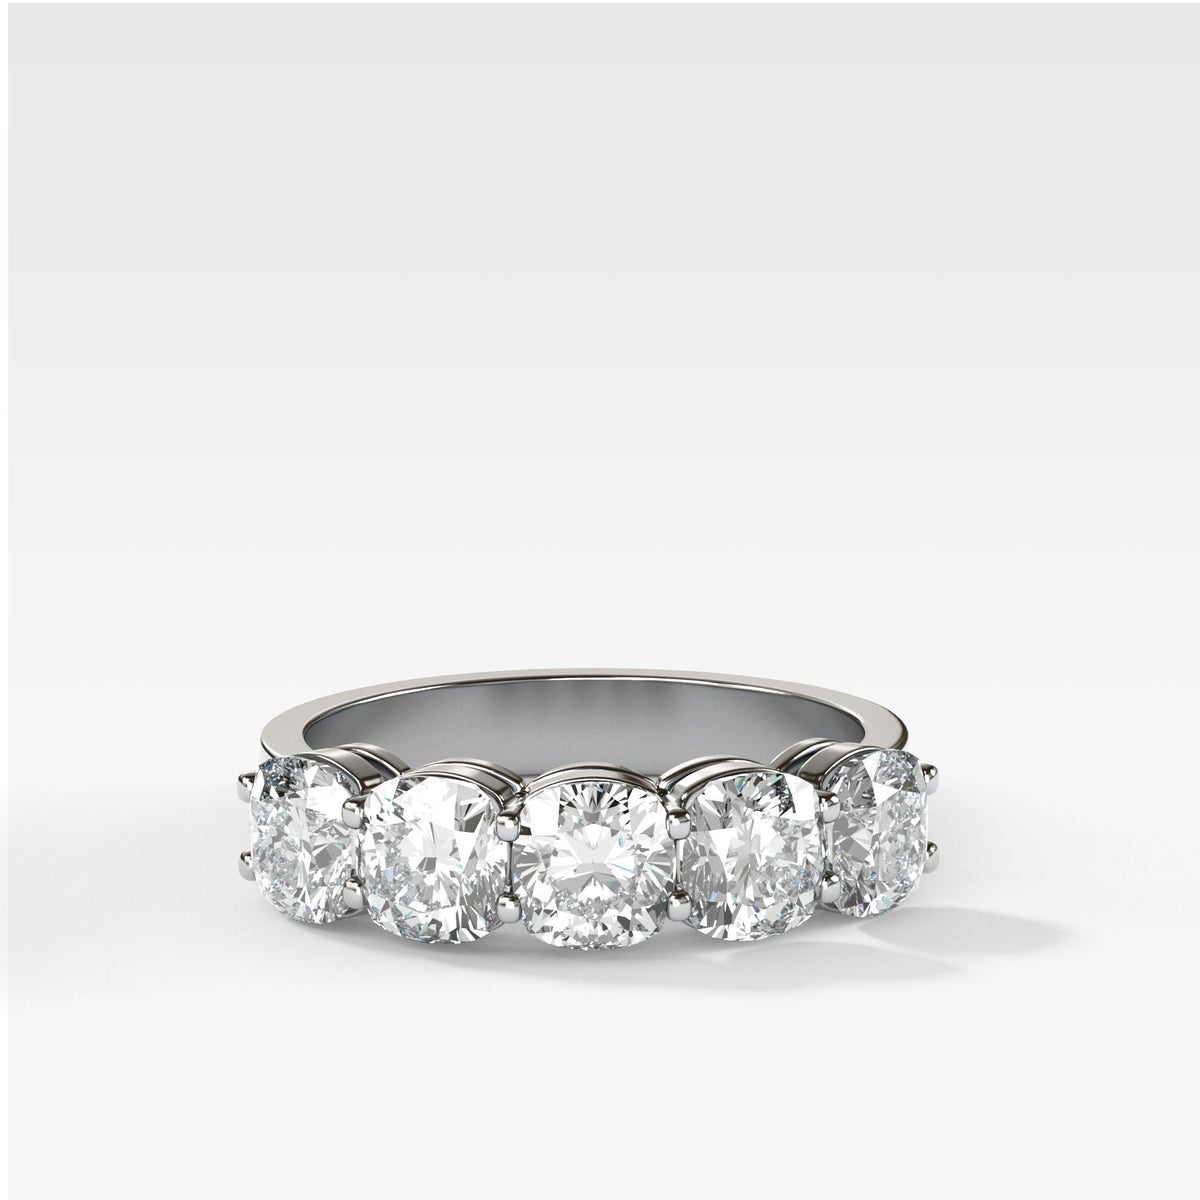 Five Stone Cushion Cut Diamond Band Ring in White Gold by Good Stone